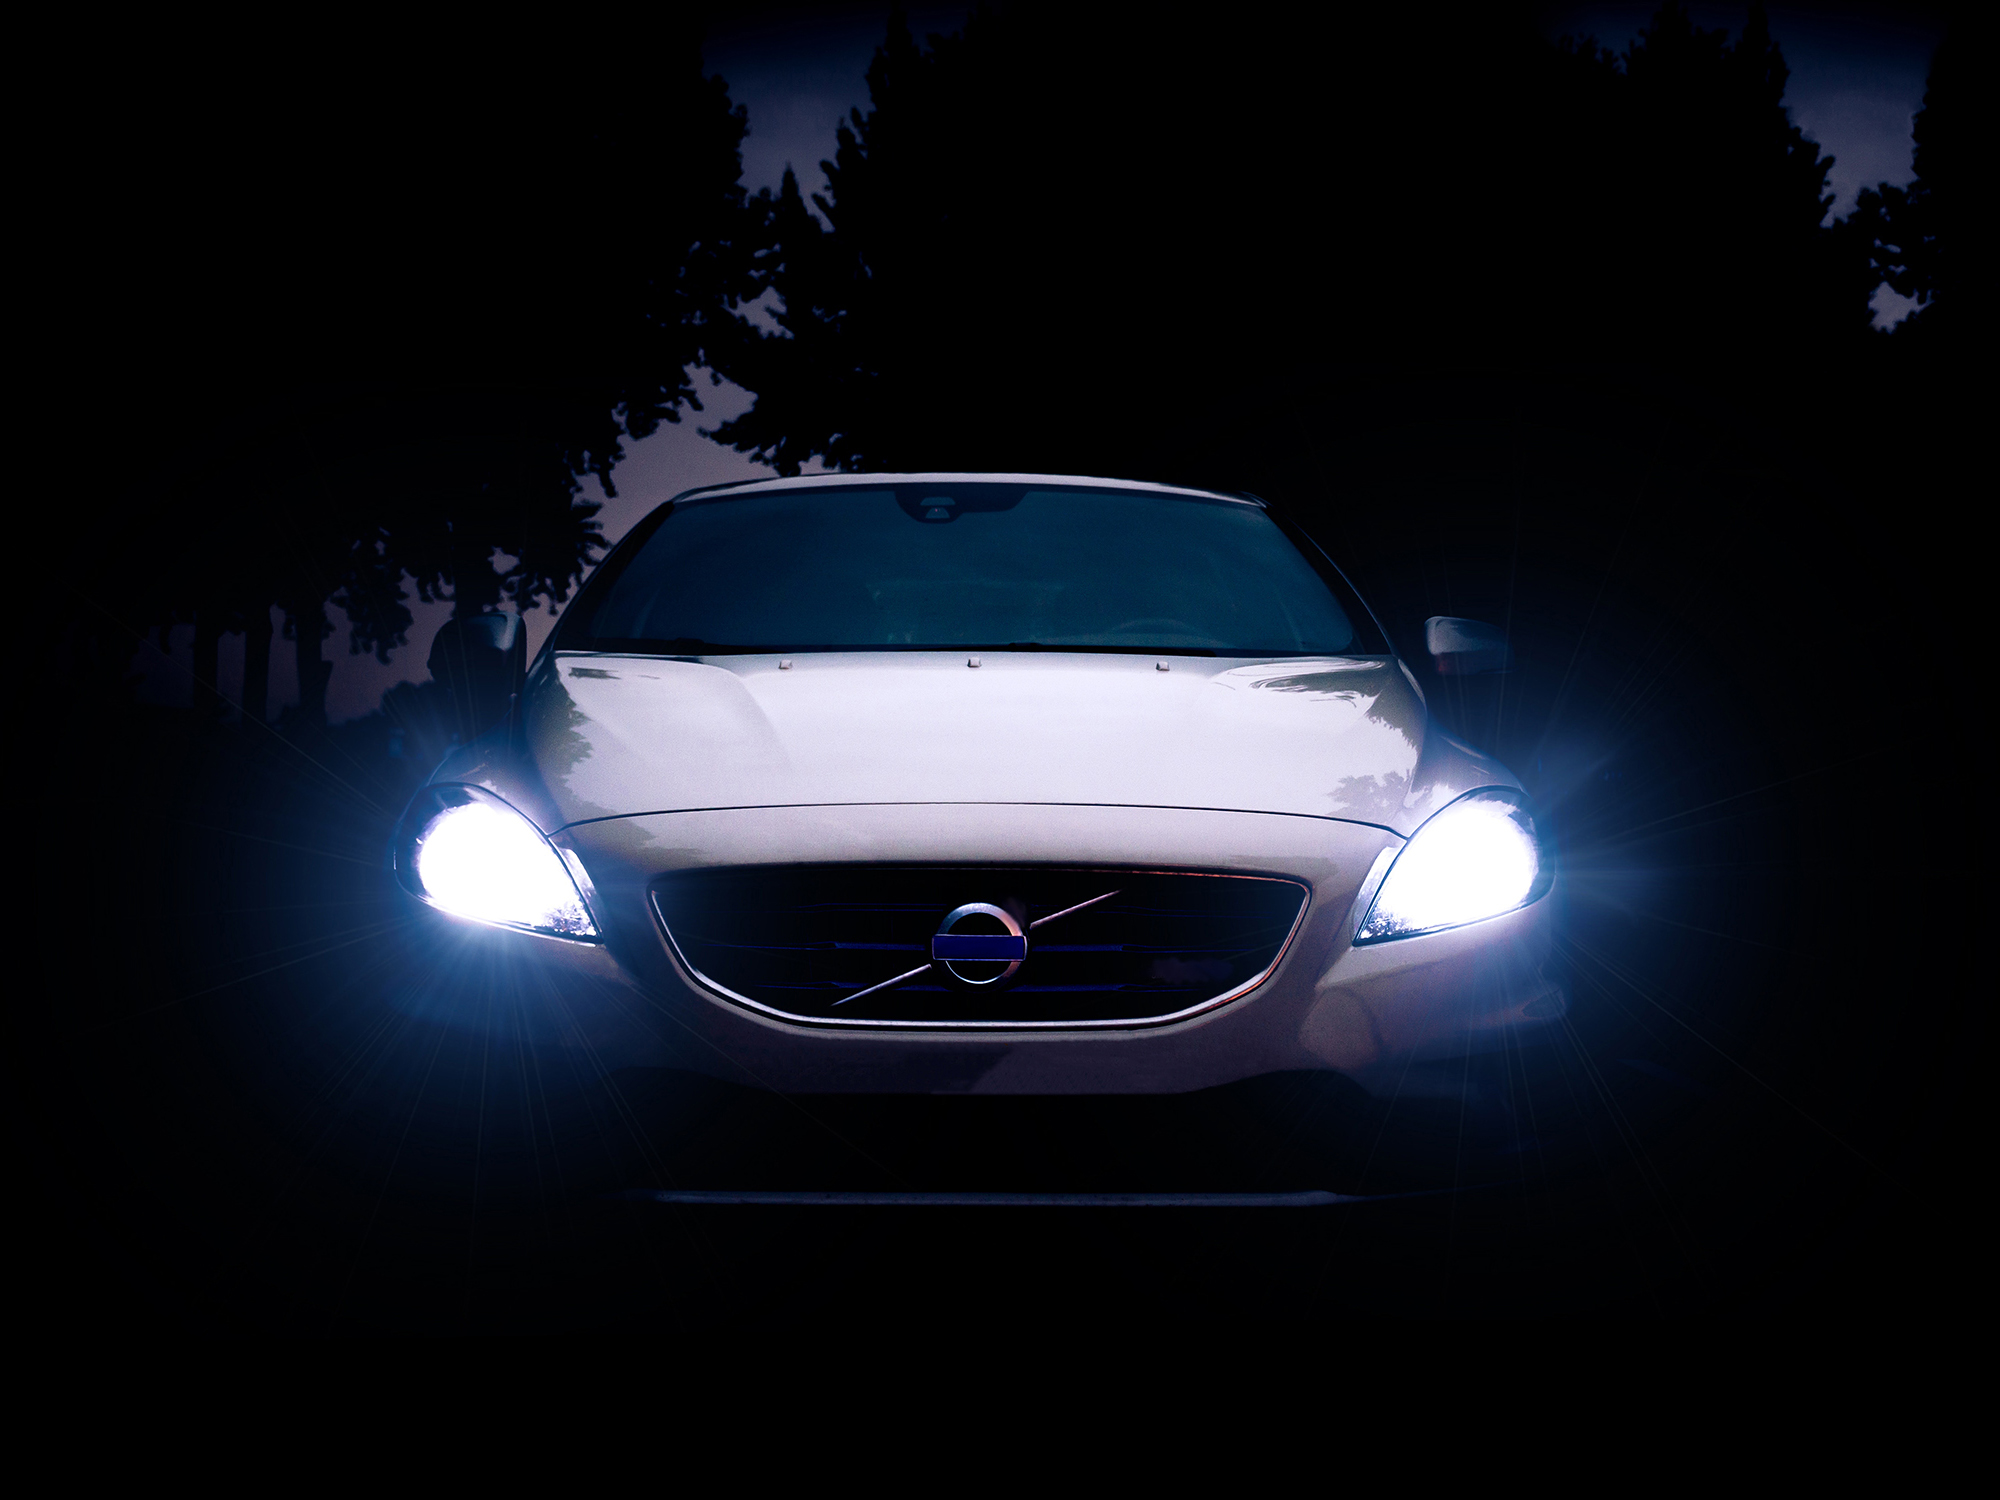 The headlights of a car in the dark.